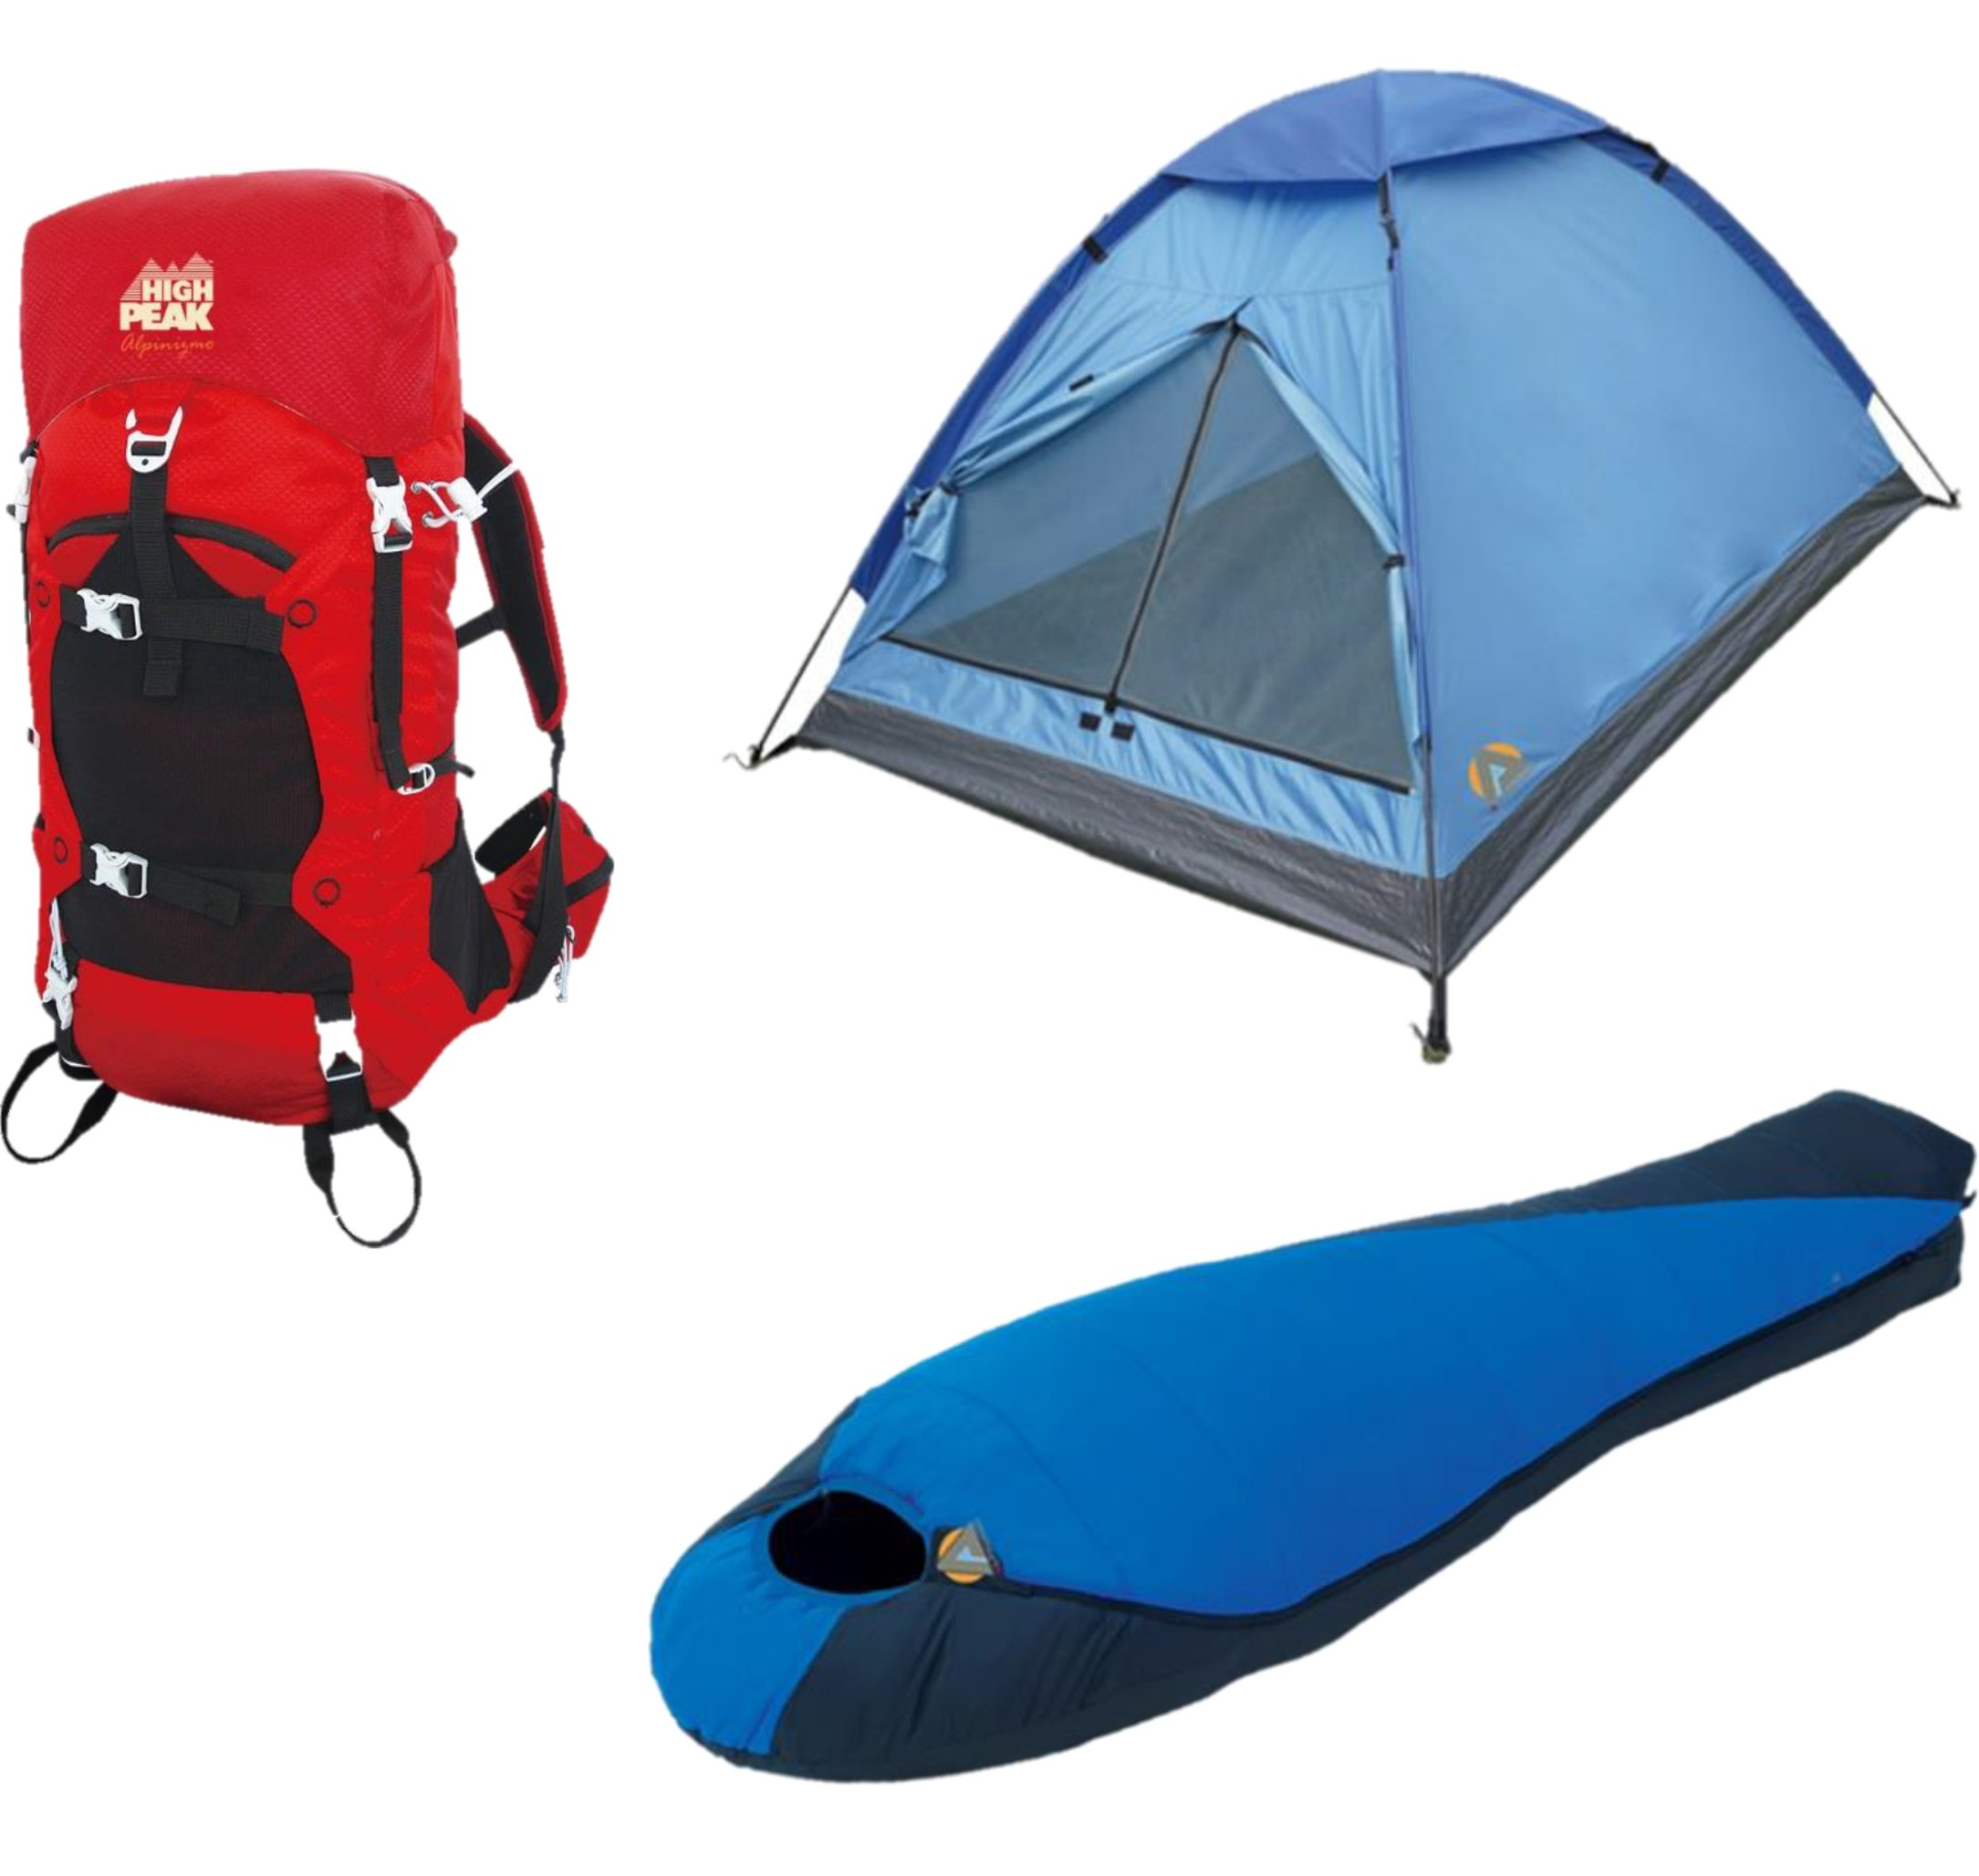 High Peak USA Alpinizmo Extreme Pak 0F Sleeping Bag 3 Men Tent & 40 Liter Hiking Pack, Red/Blue, One Size by Alpinizmo